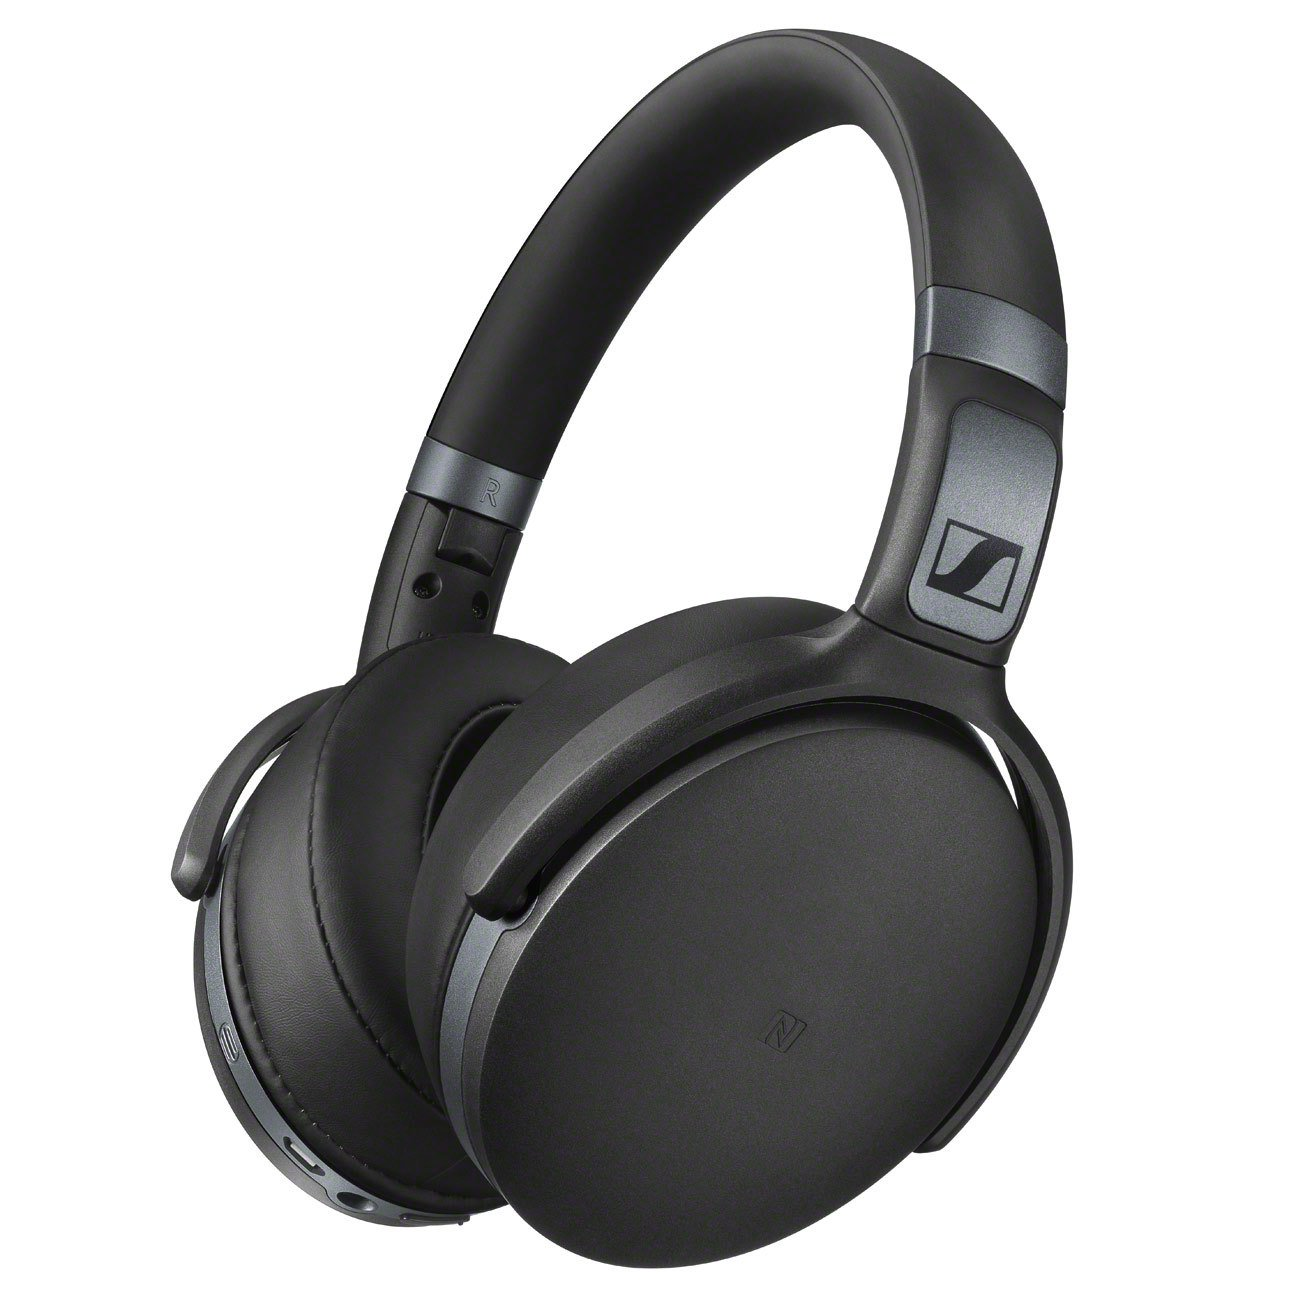 هدست - ميكروفن - هدفون سنهایزر- Sennheiser HD 4.40 BT WIRELESS